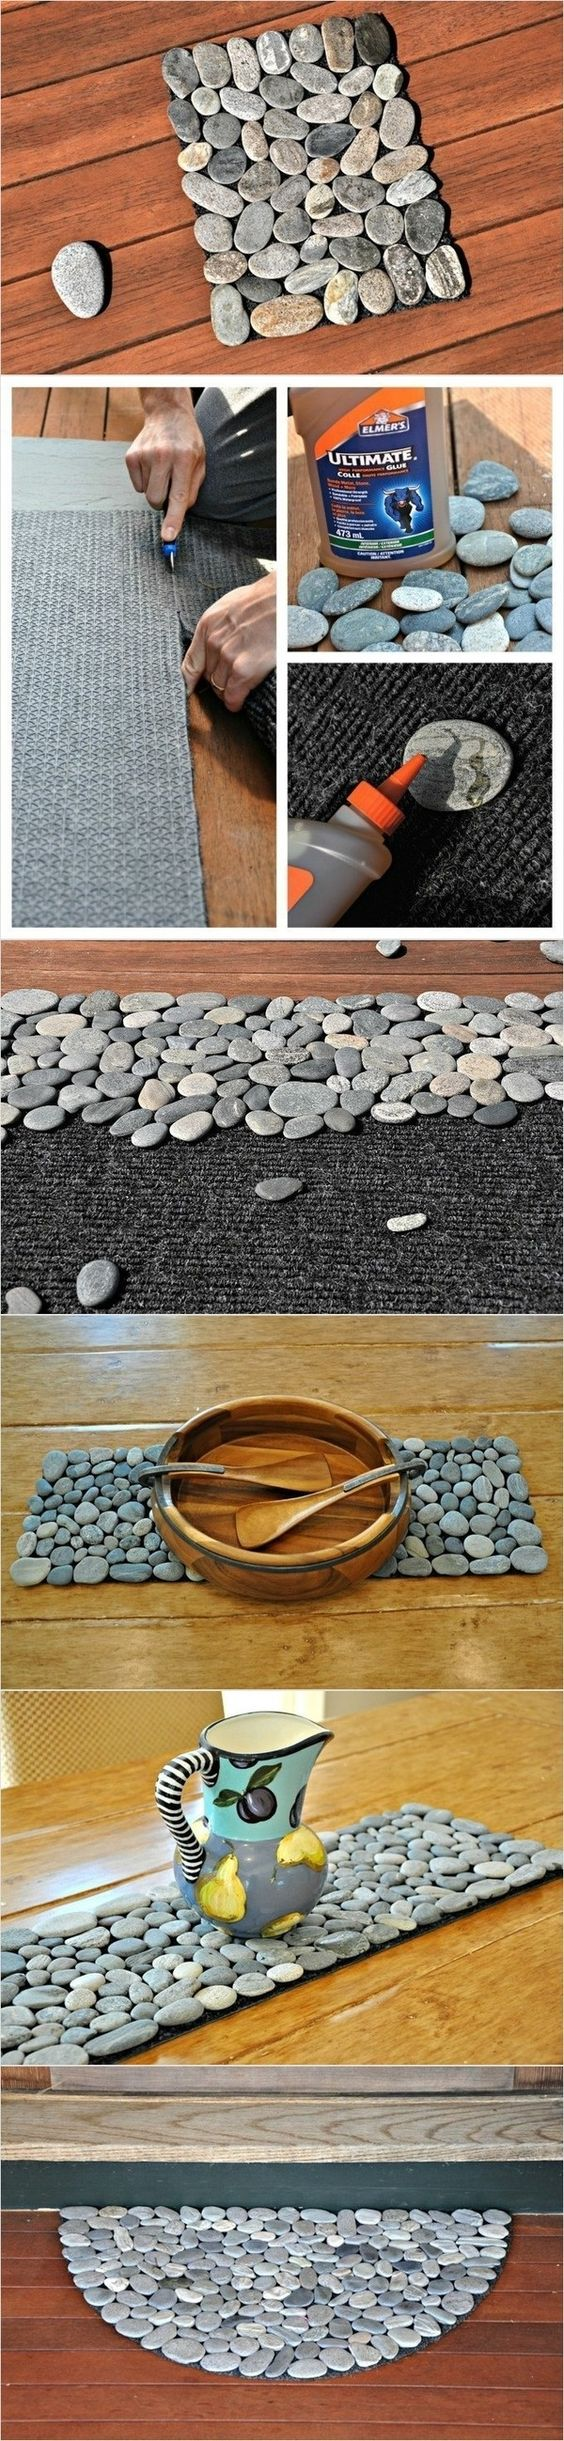 31 Useful And Most Popular DIY Ideas, Y pebble mat